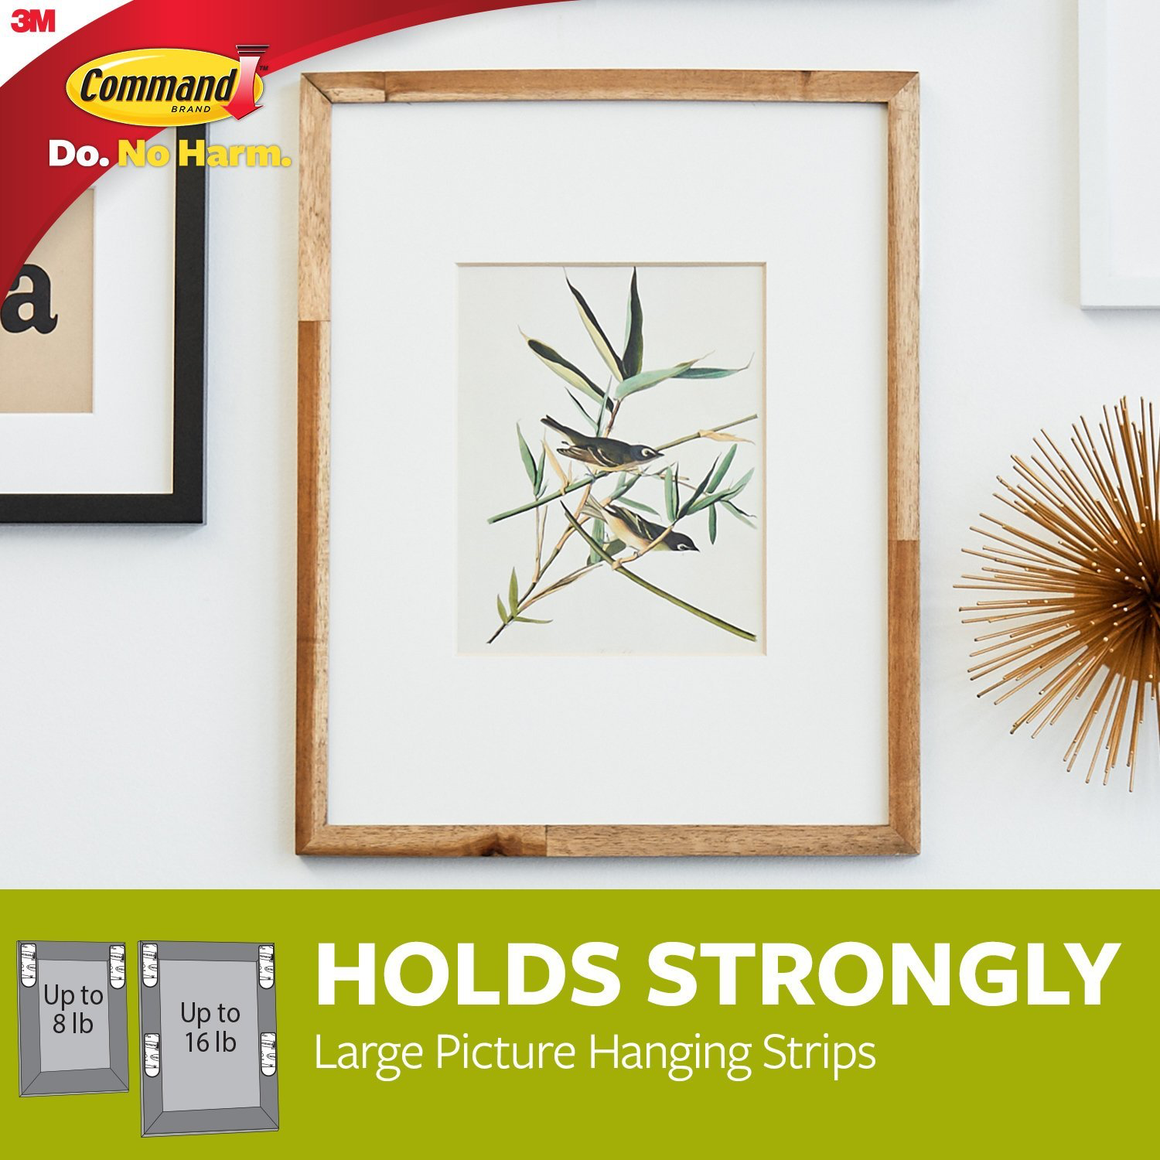 Command™ Damage-Free Picture Hanging Strips